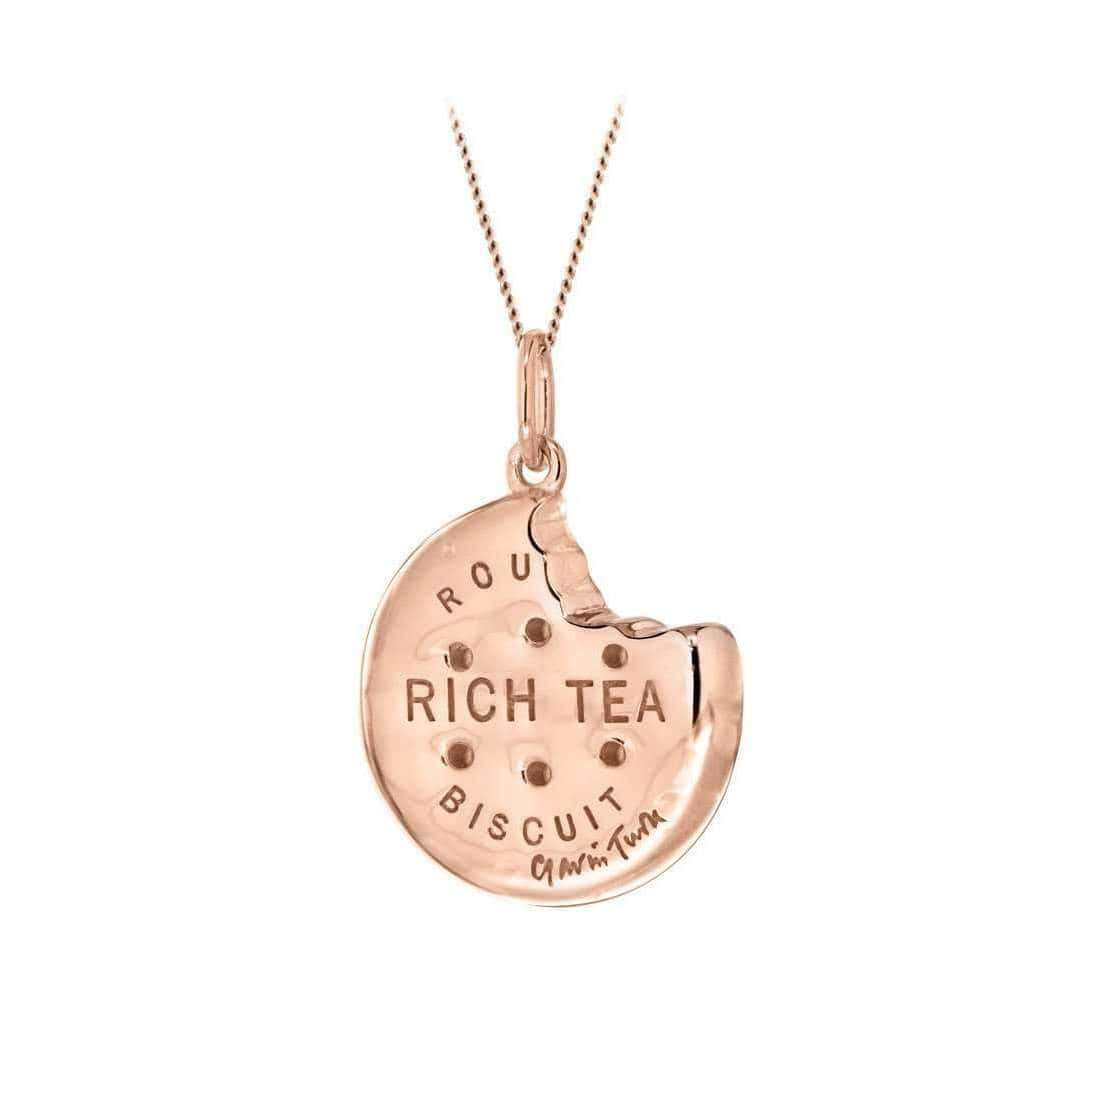 Rose Gold Rich Tea Biscuit Pendant, True Rocks